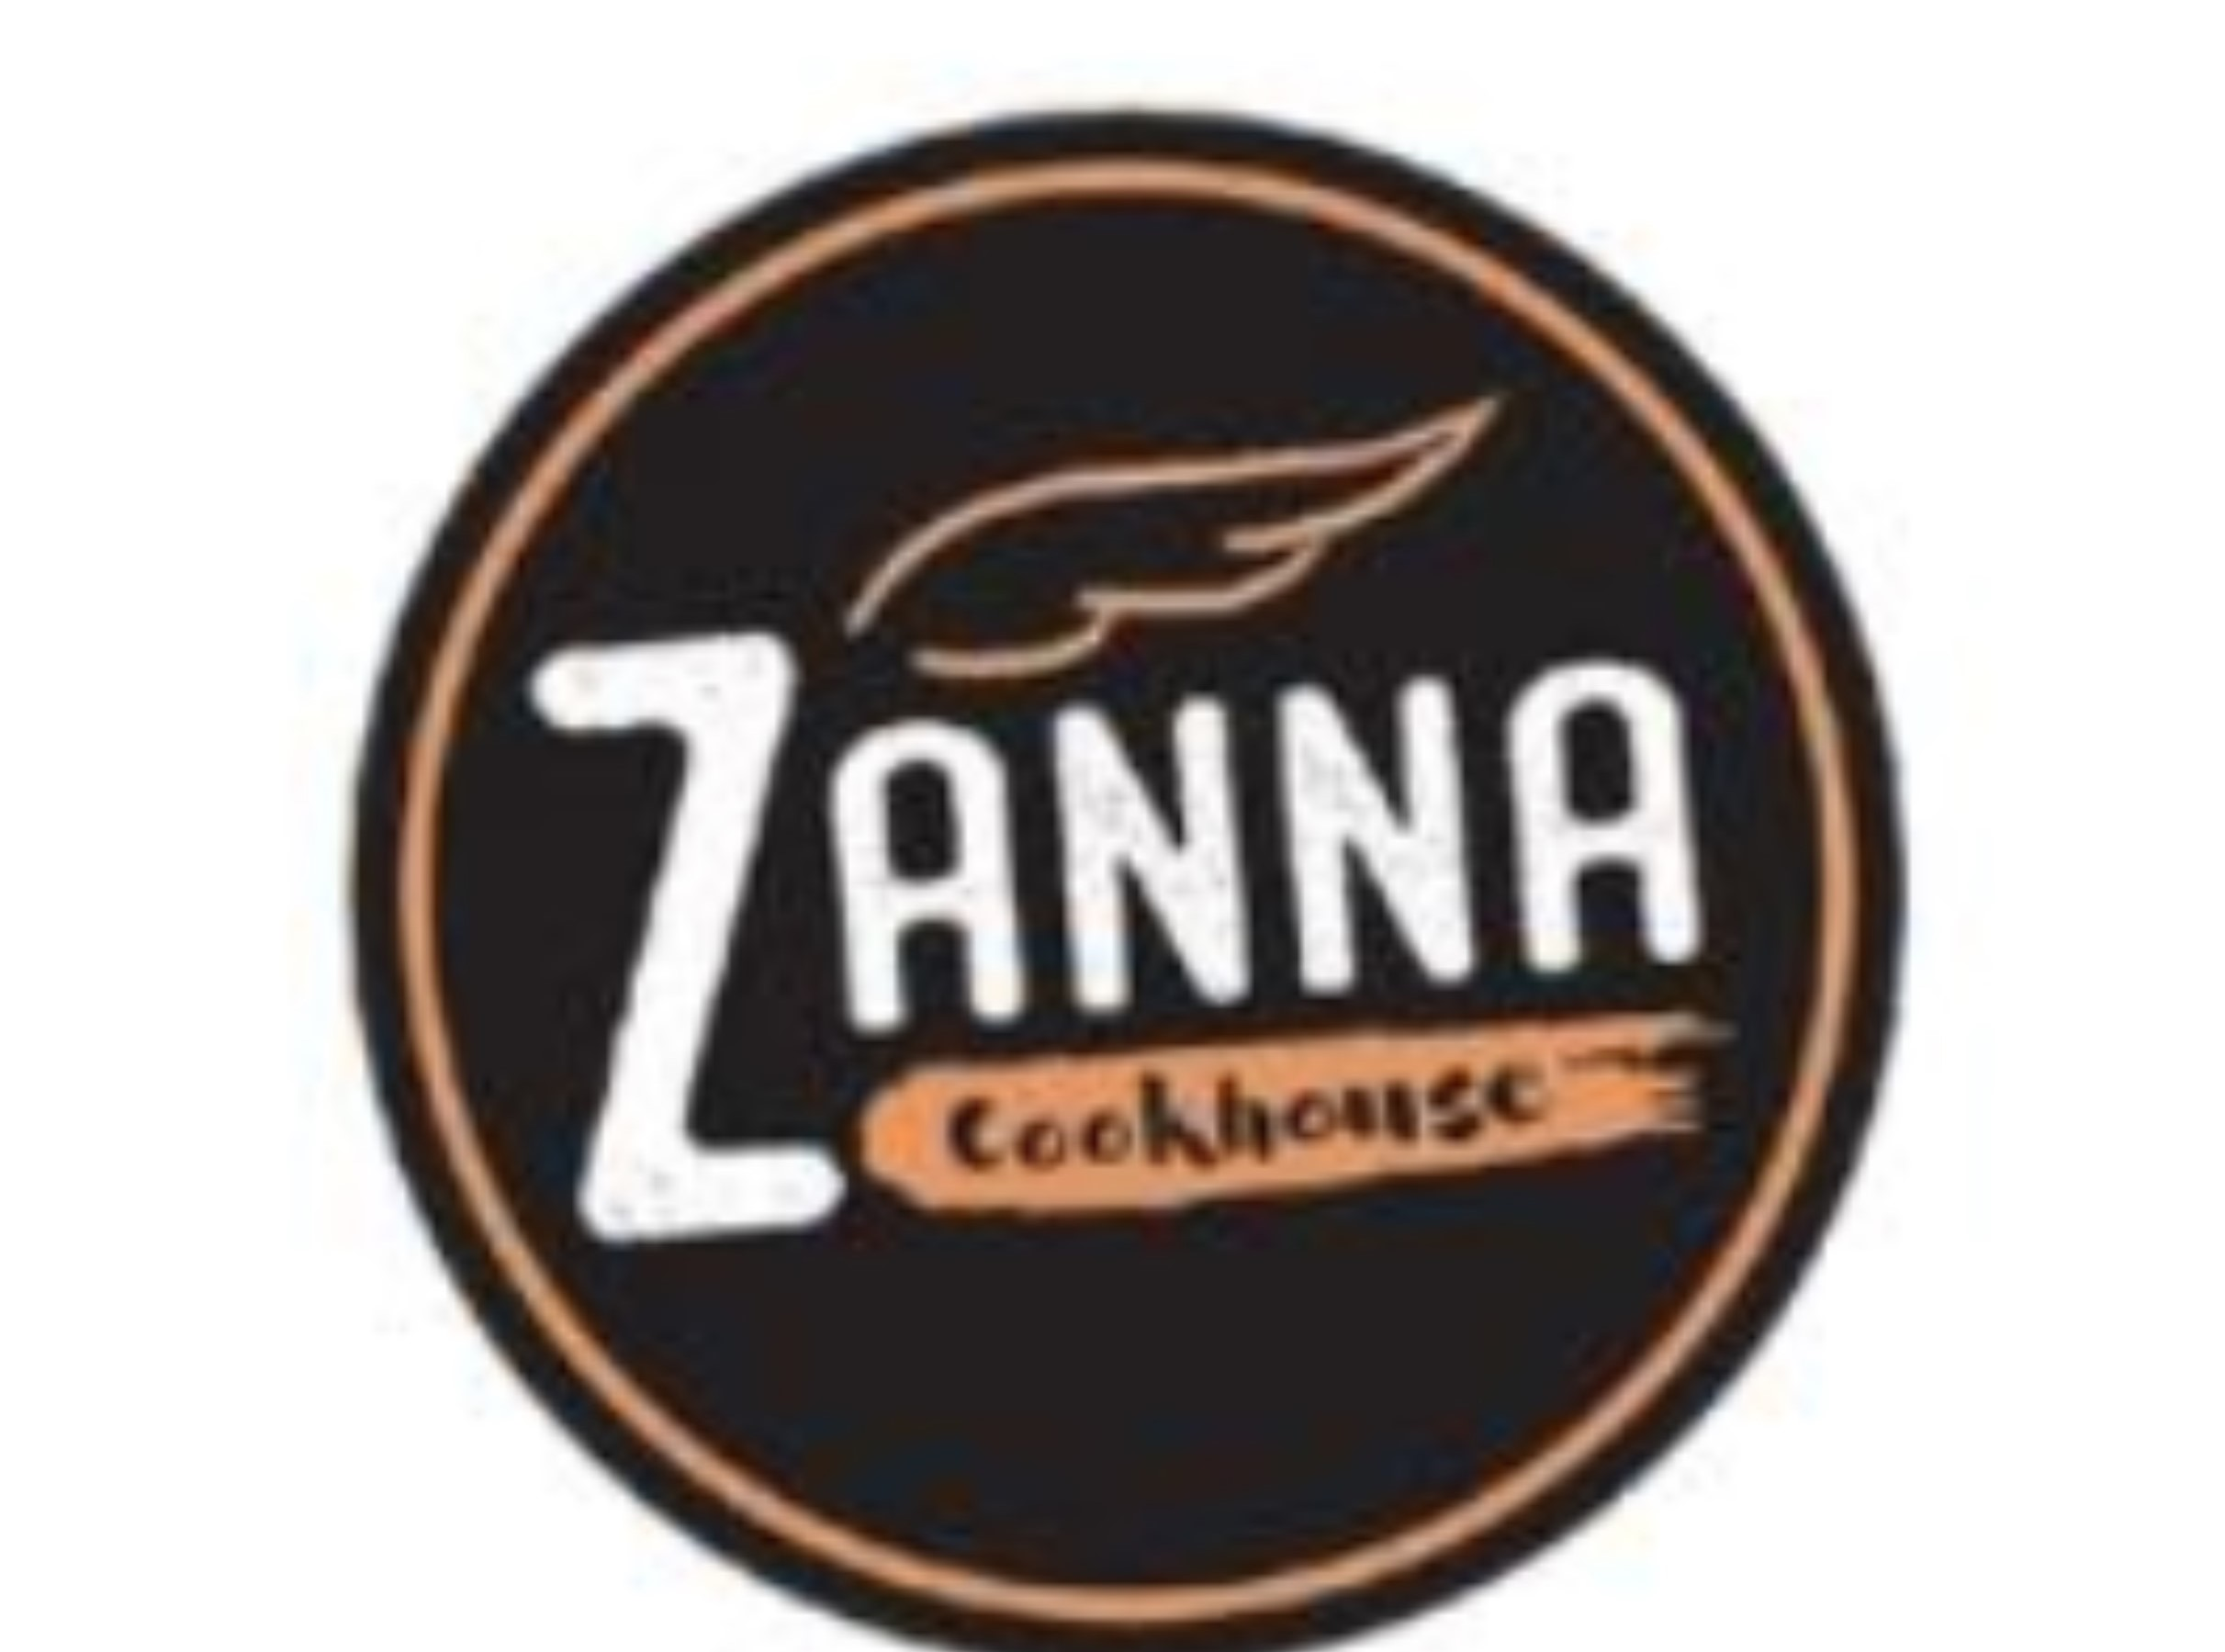 Zanna Cookhouse ltd